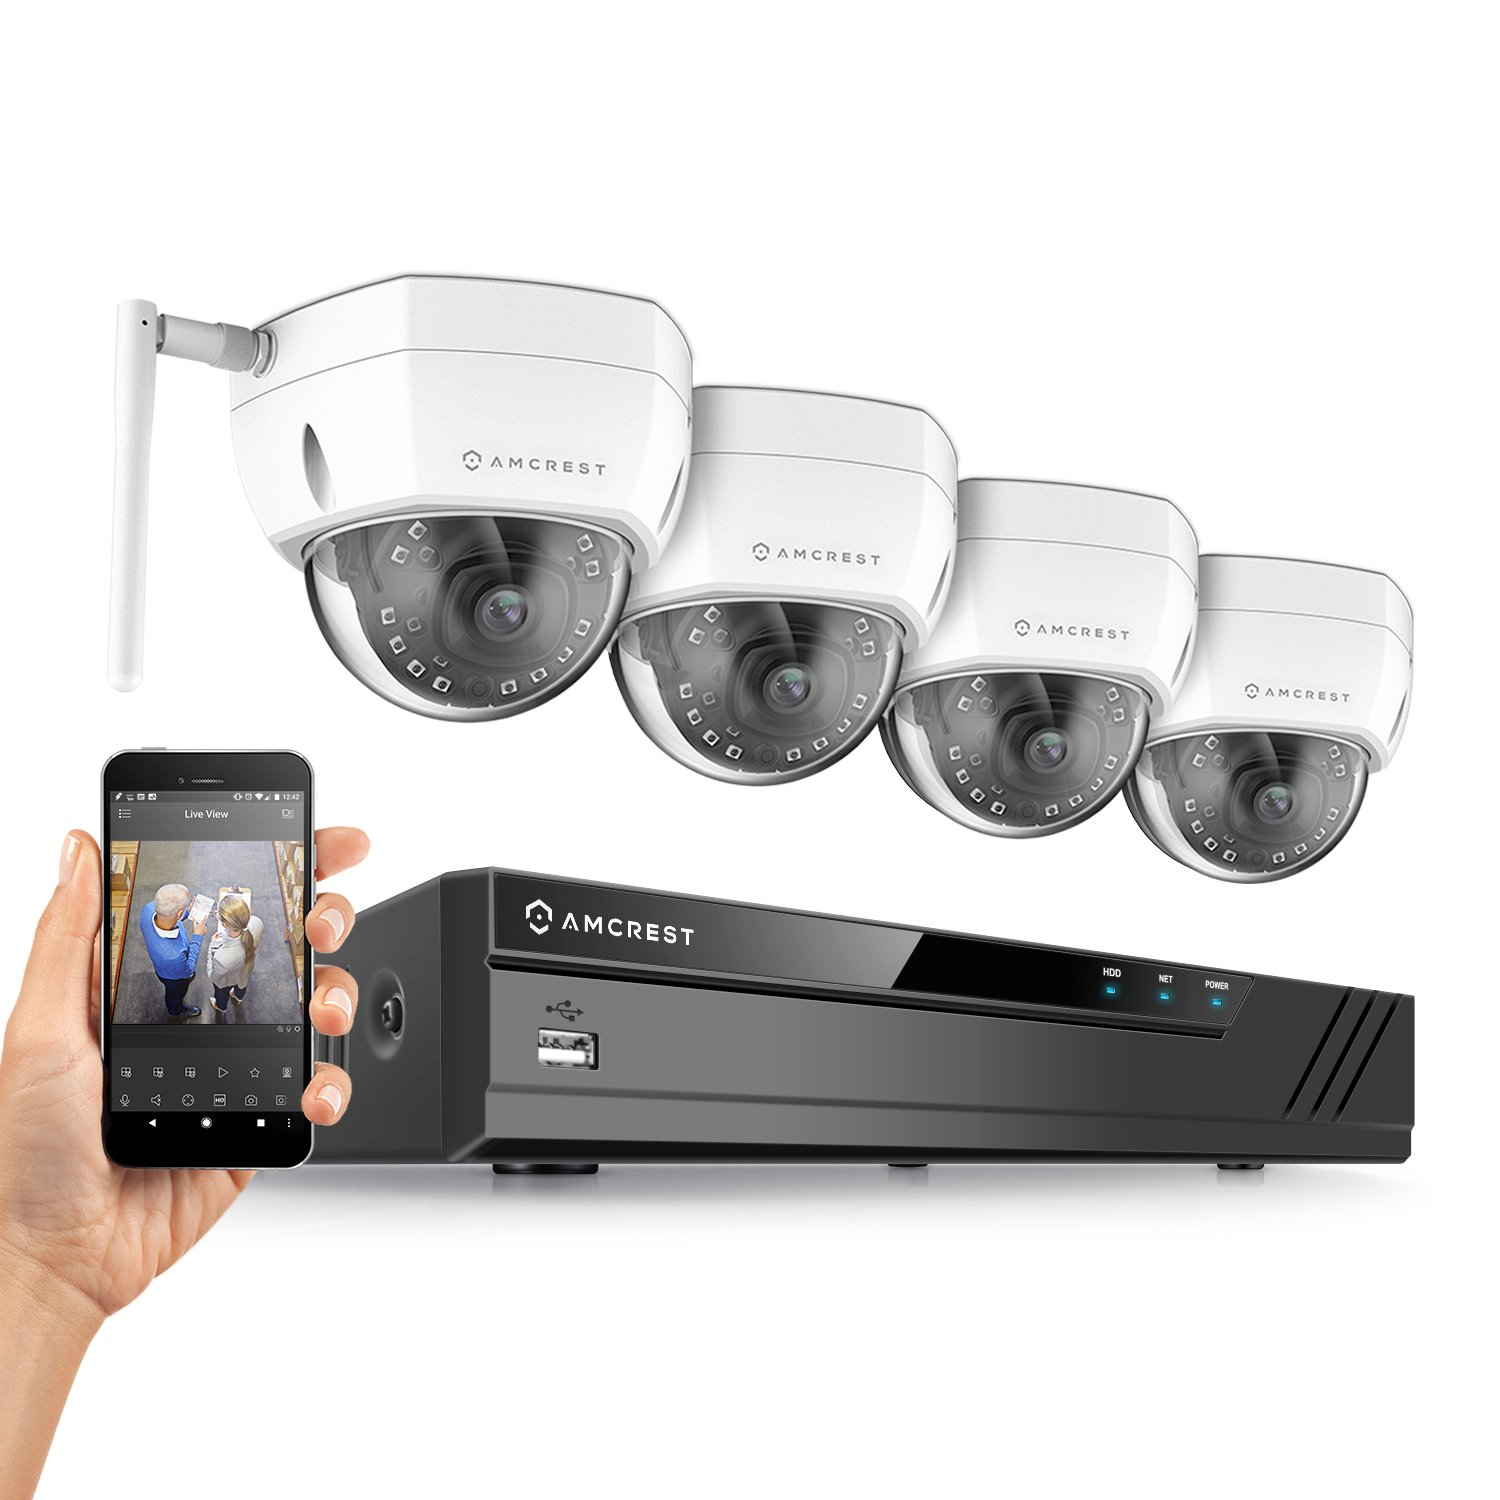 Amcrest 8CH Plug & Play H.265 4K NVR 4MP 1520P Security Camera System, (4) x 4-Megapixel 3.6mm Wide Angle Lens Weatherproof Metal Dome Wi-Fi IP Cameras, 98 Feet Night Vision (White)